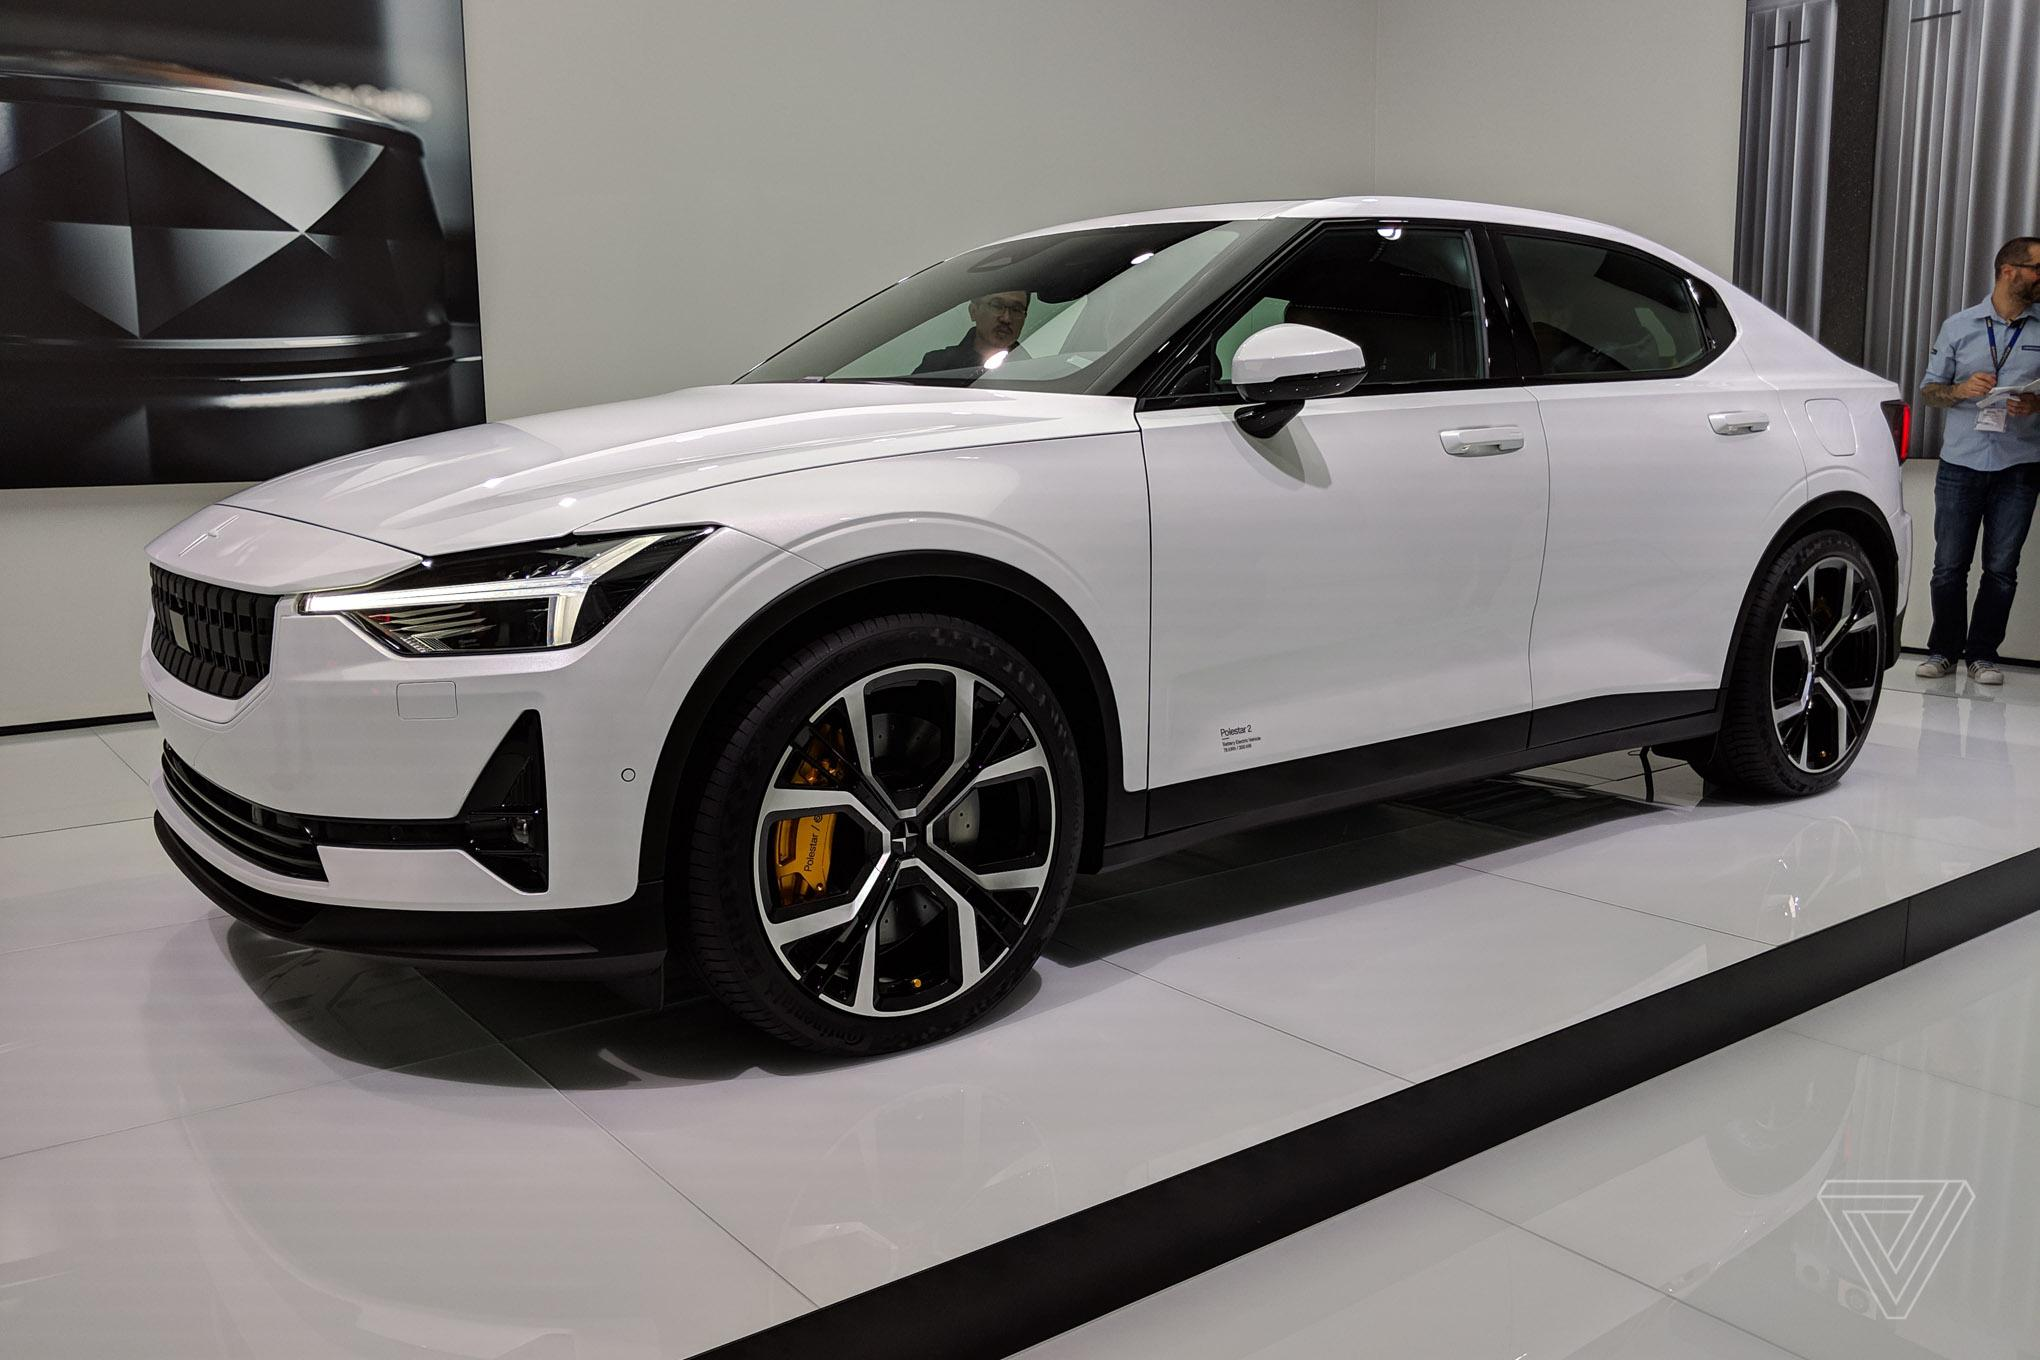 The Polestar 2's secret weapon against Tesla's Model 3 is Android ...